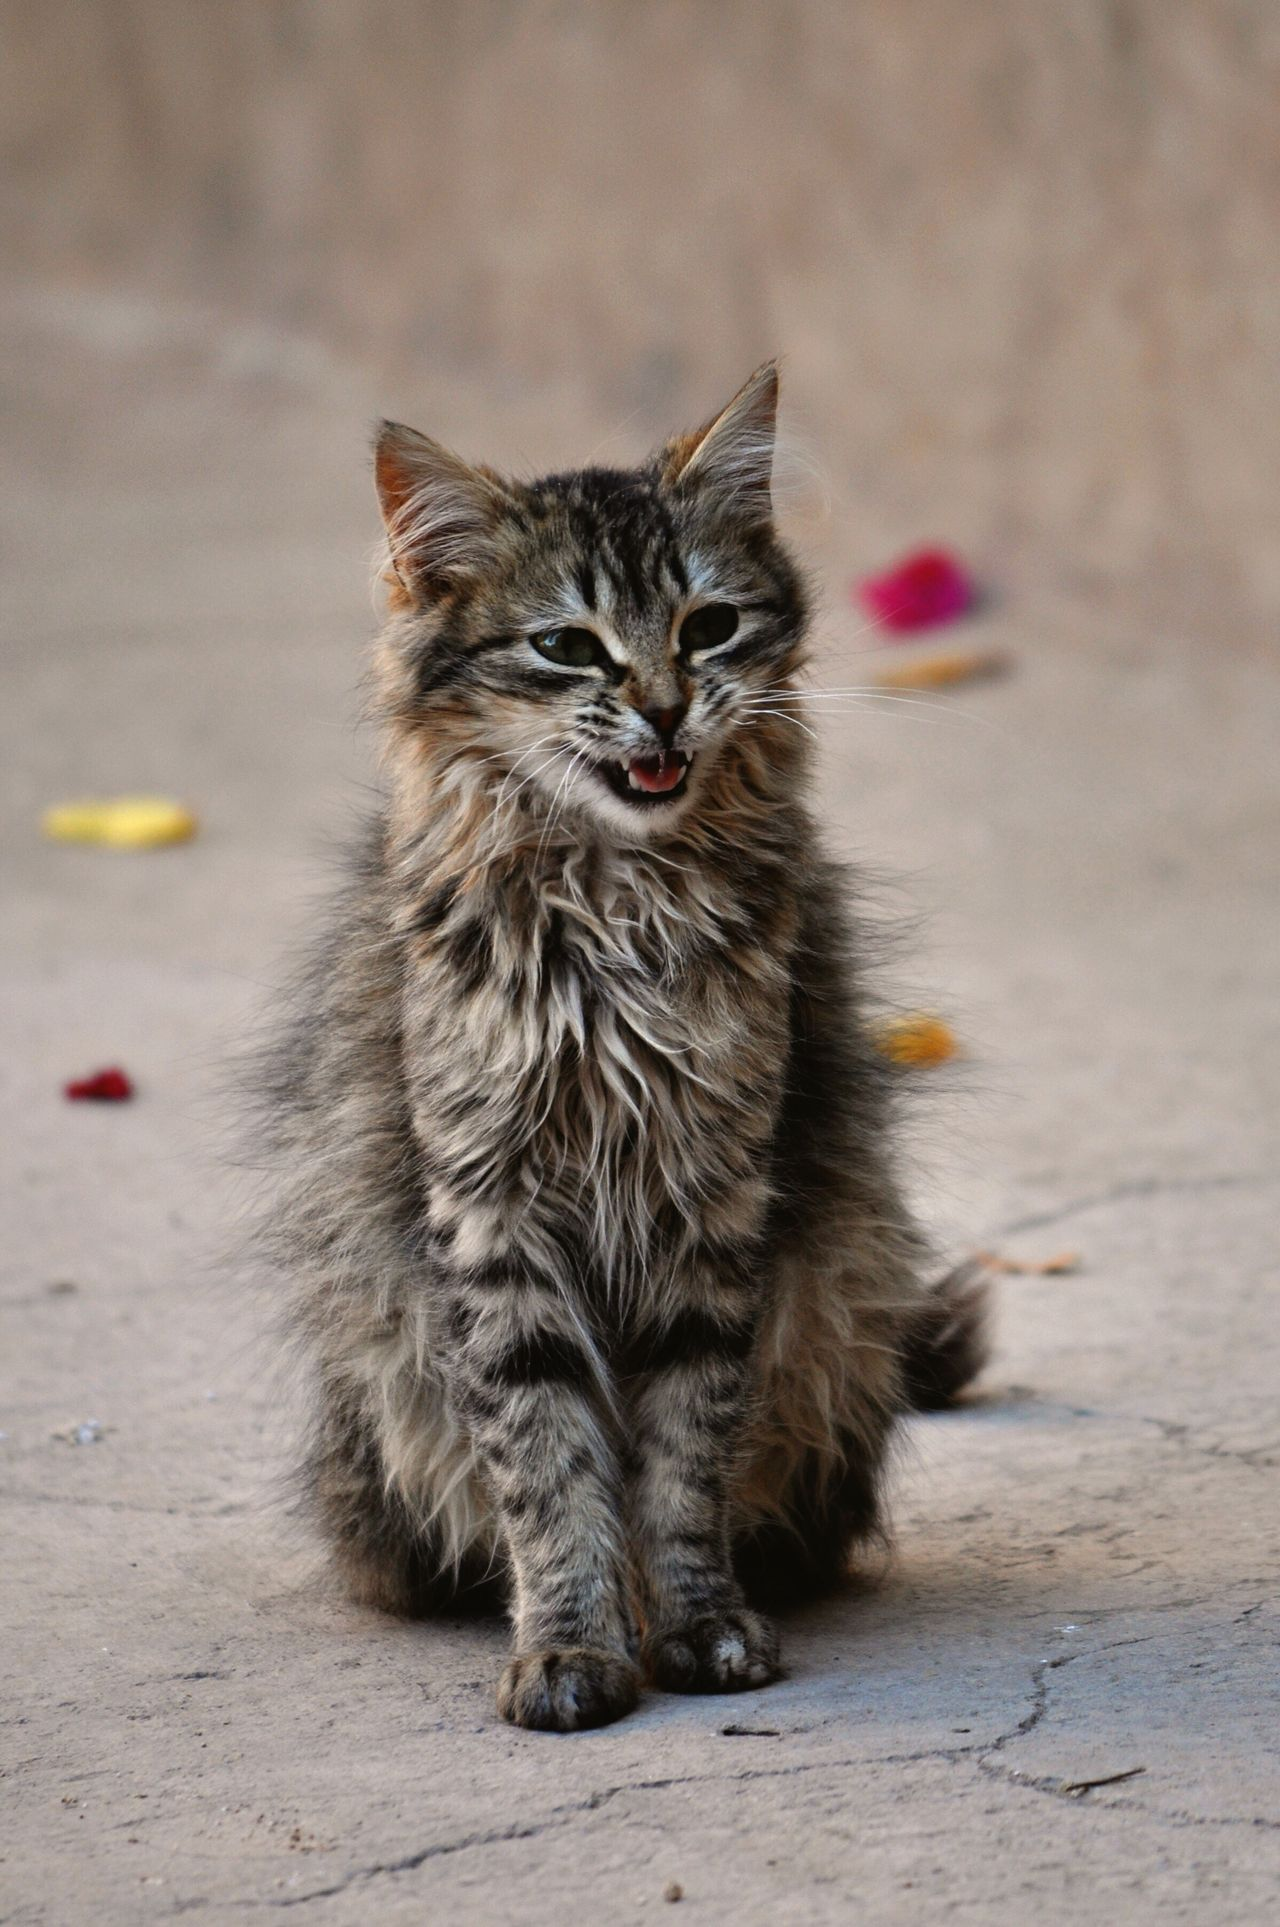 One Animal Cat Morocco Marrakech Animal Themes Mammal Feline Whisker No People Outdoors